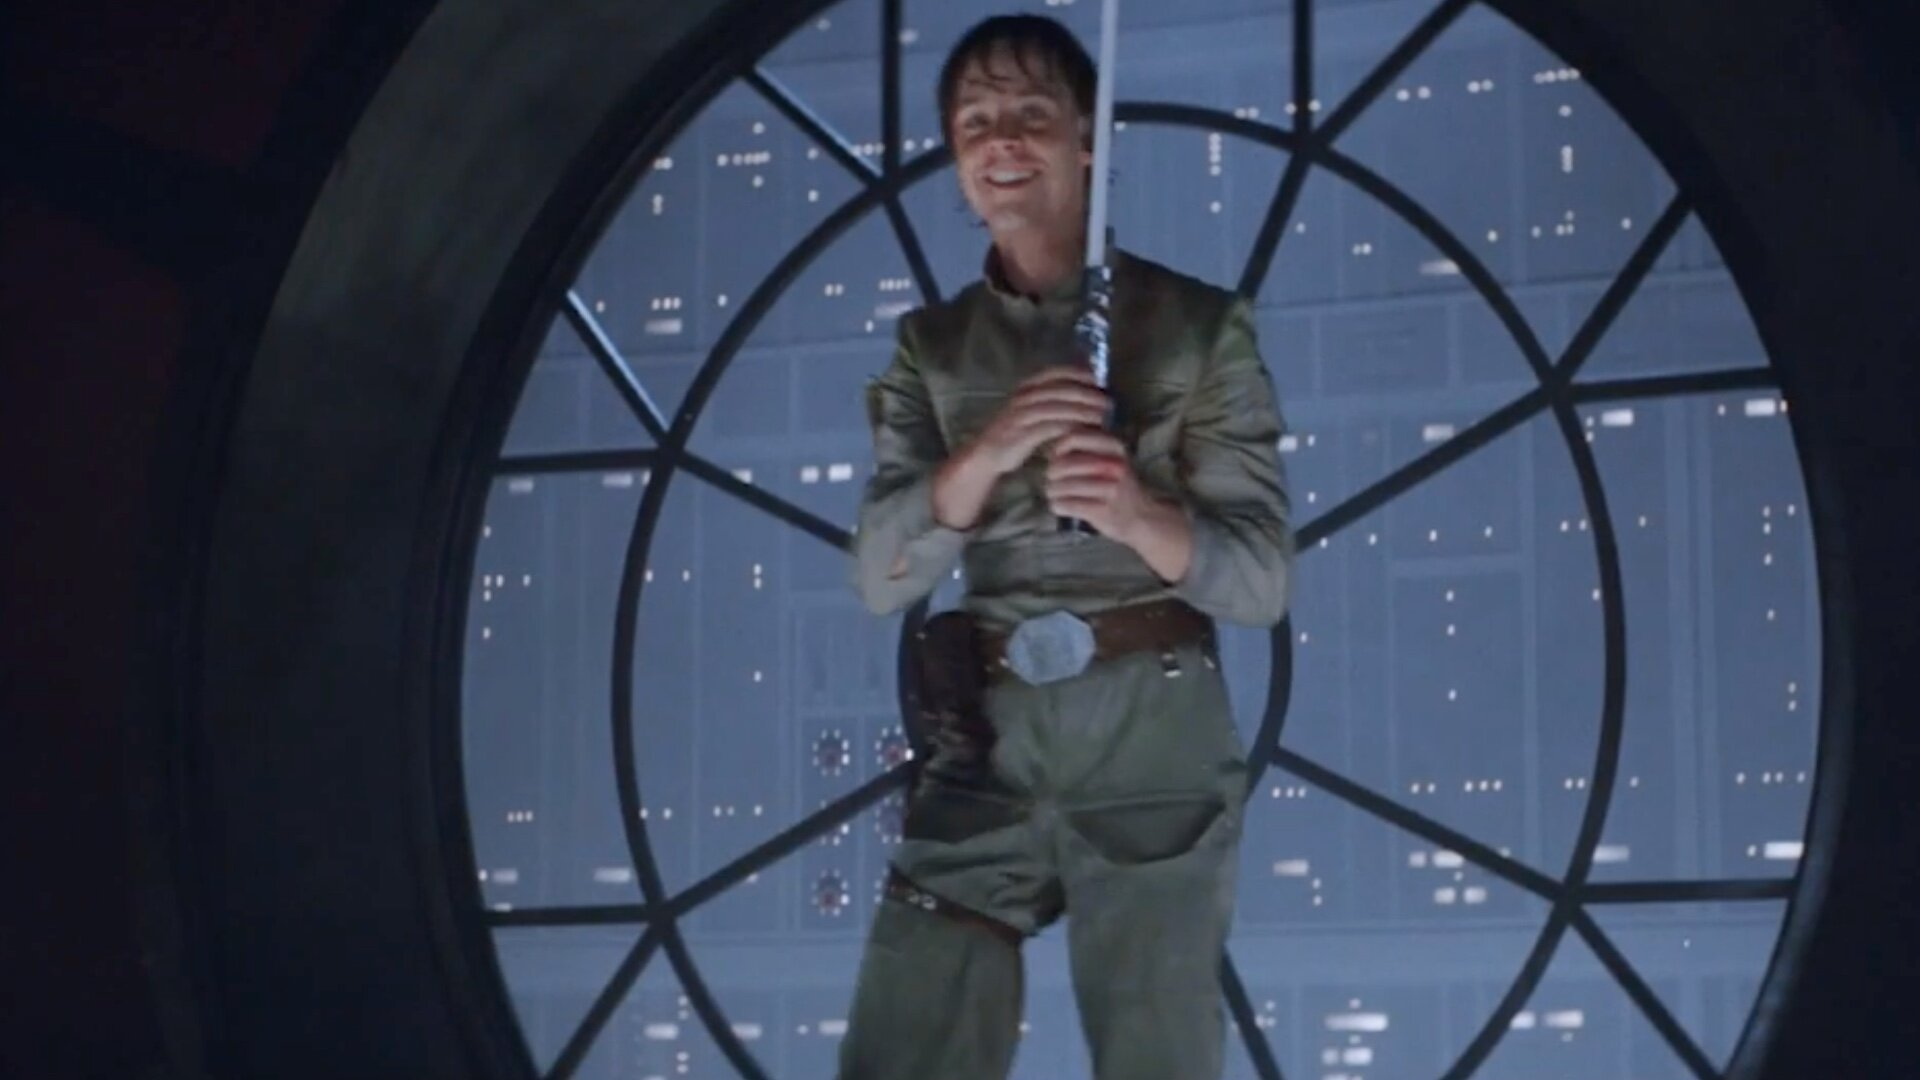 g7 20 Things You Didn't Know About The Empire Strikes Back